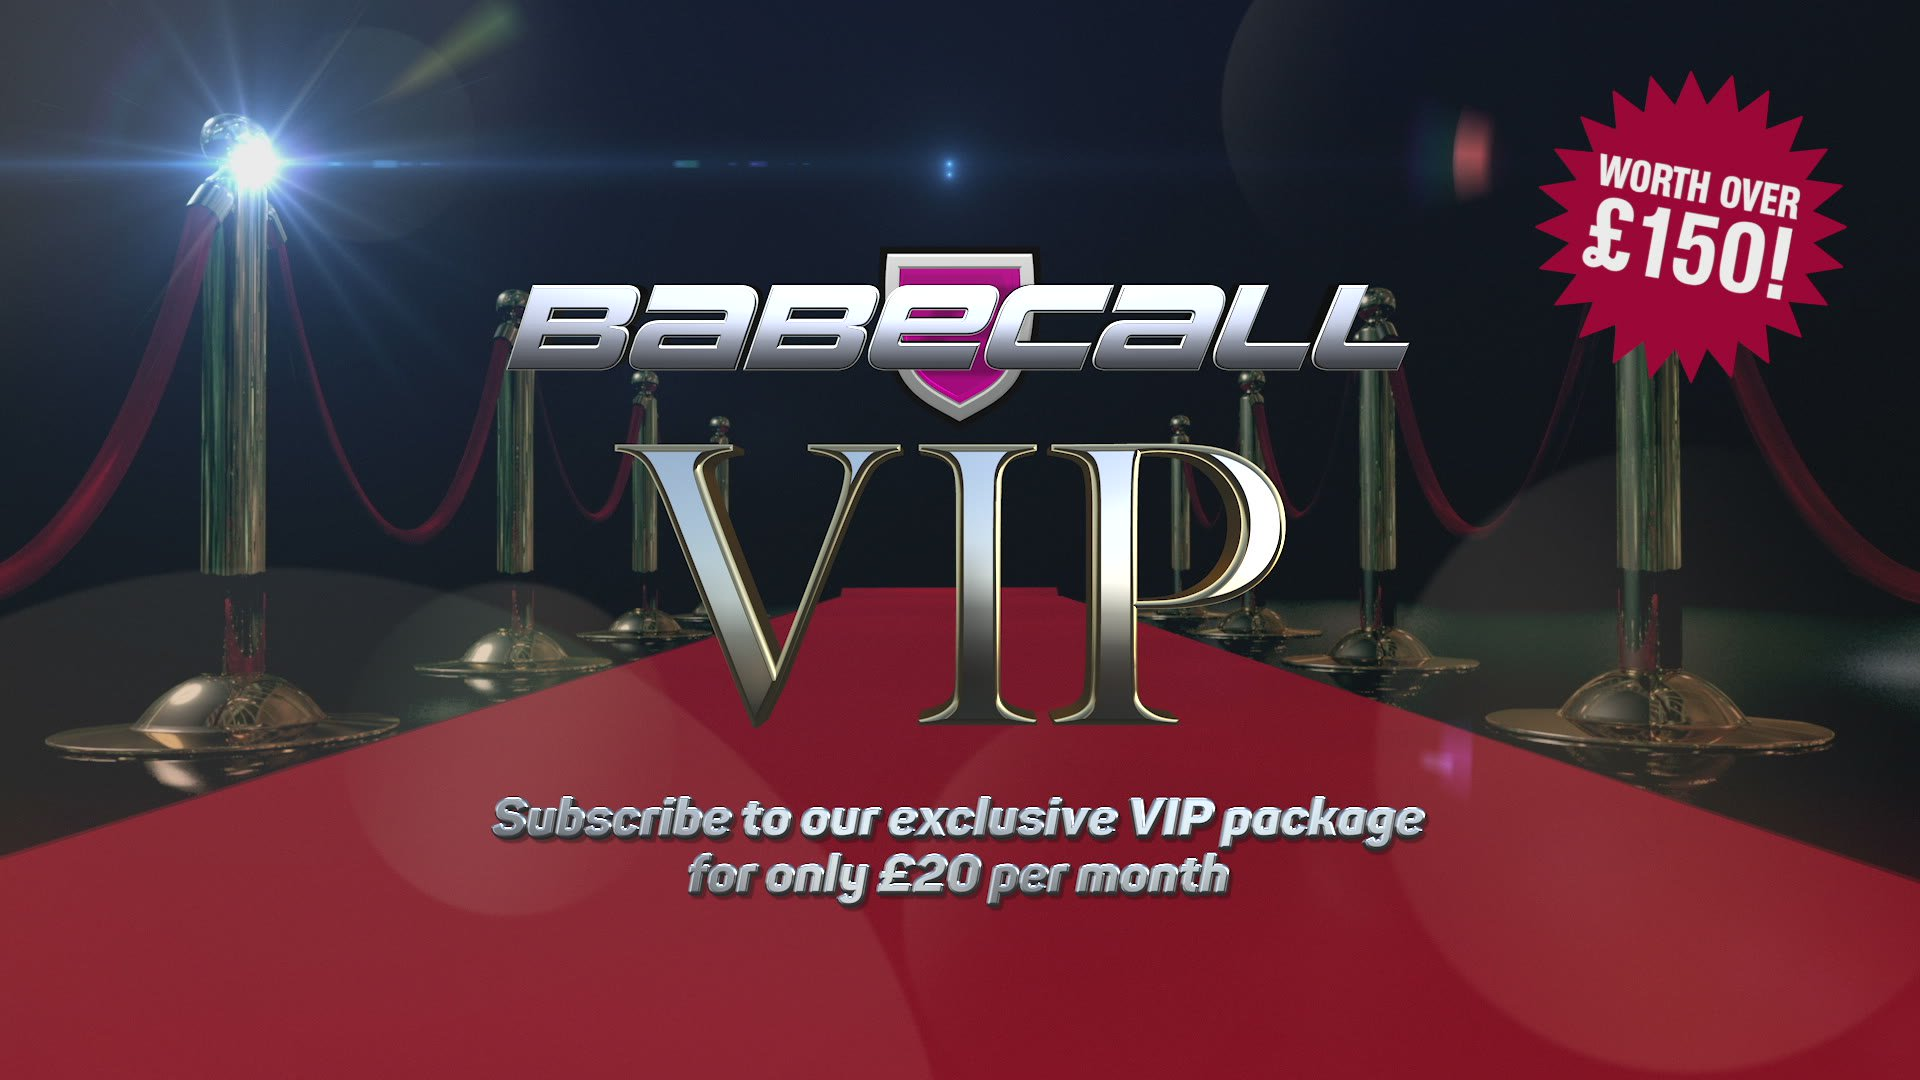 Babecall VIP